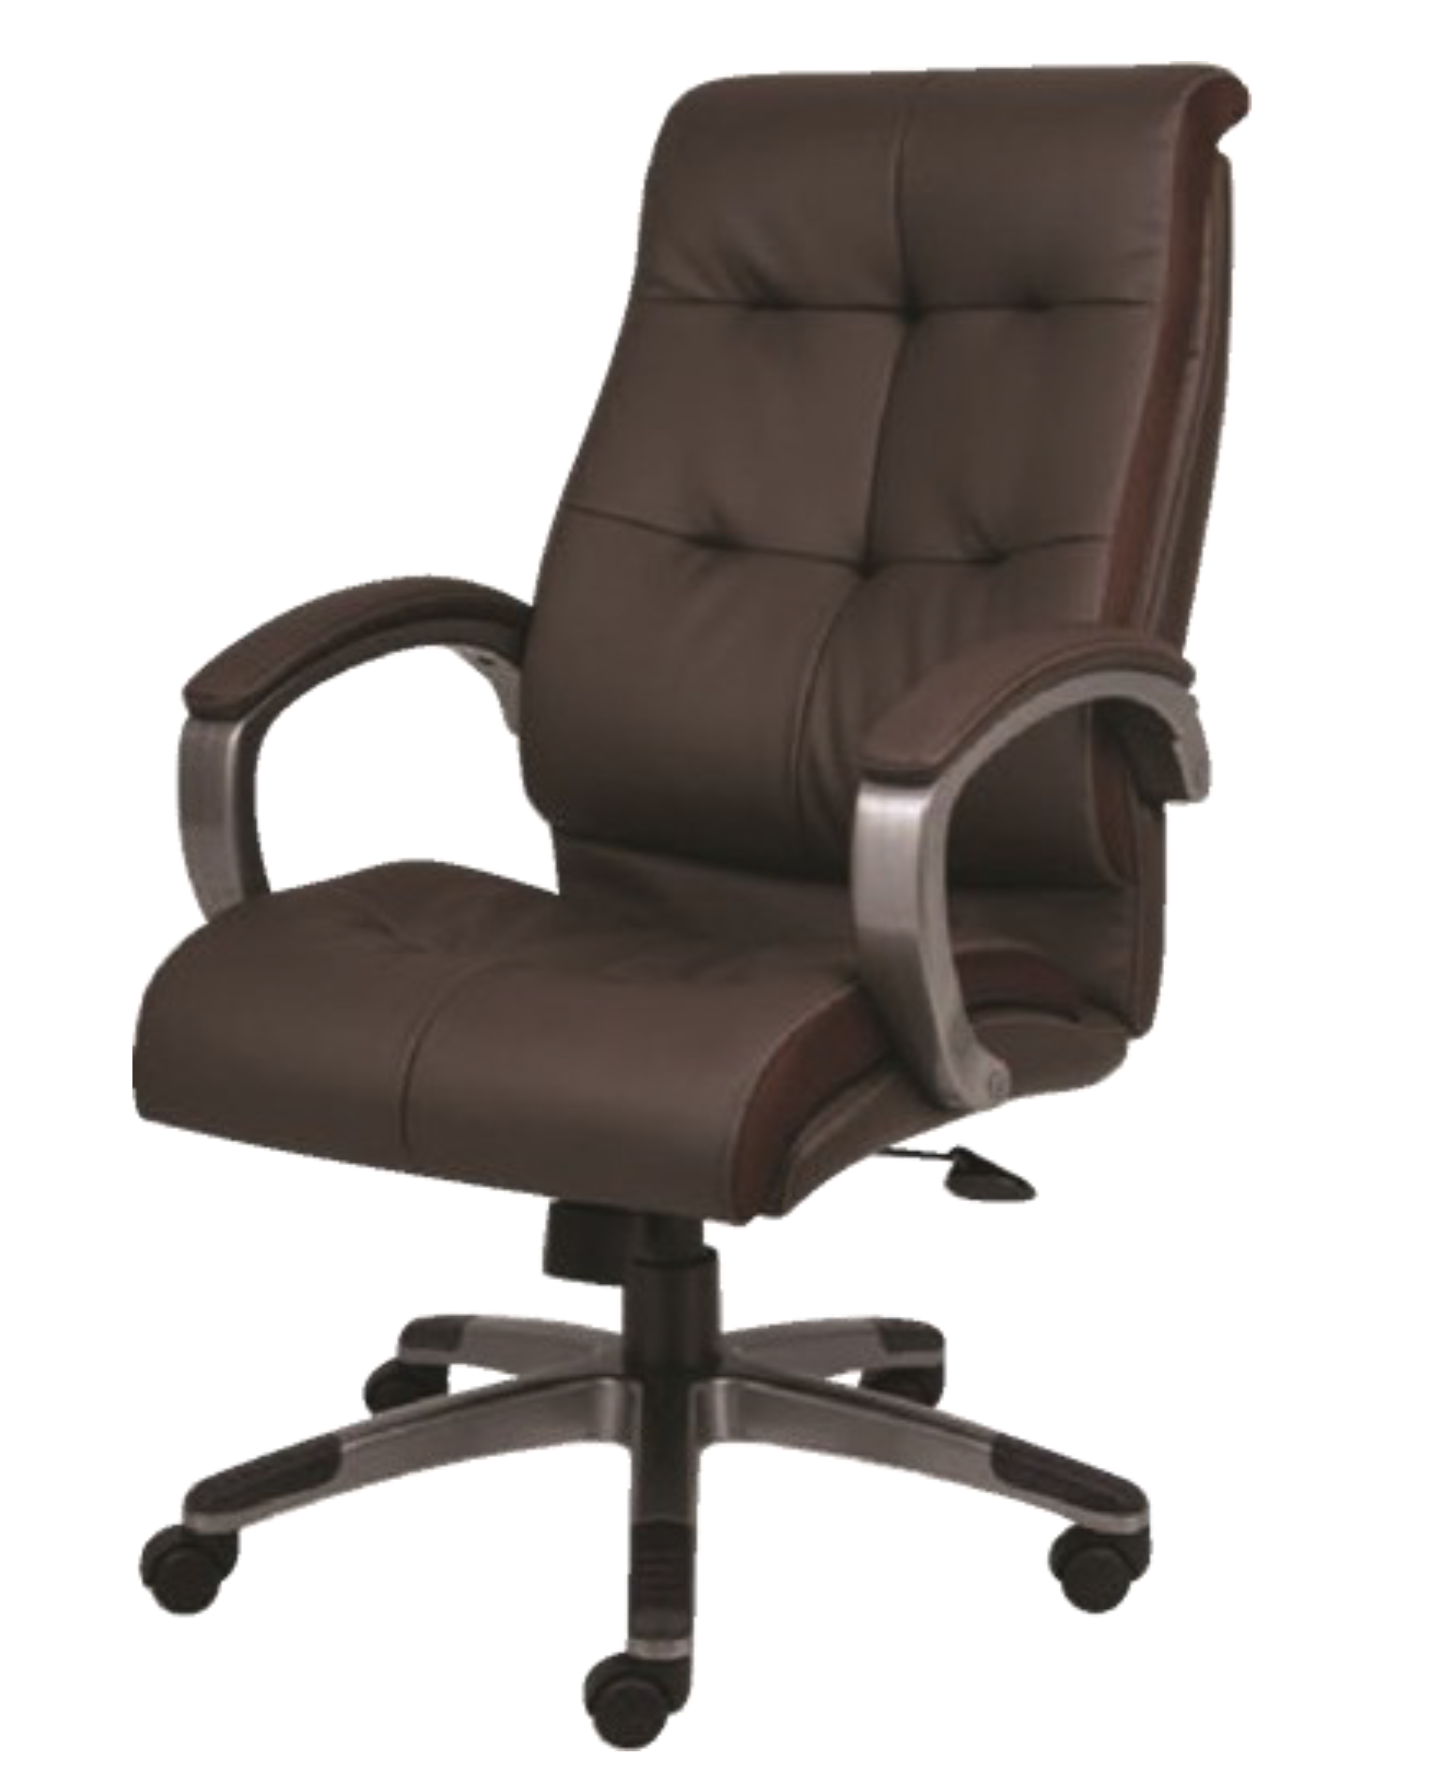 High Back Brown Executive Chair with Upholstered Arm Pads